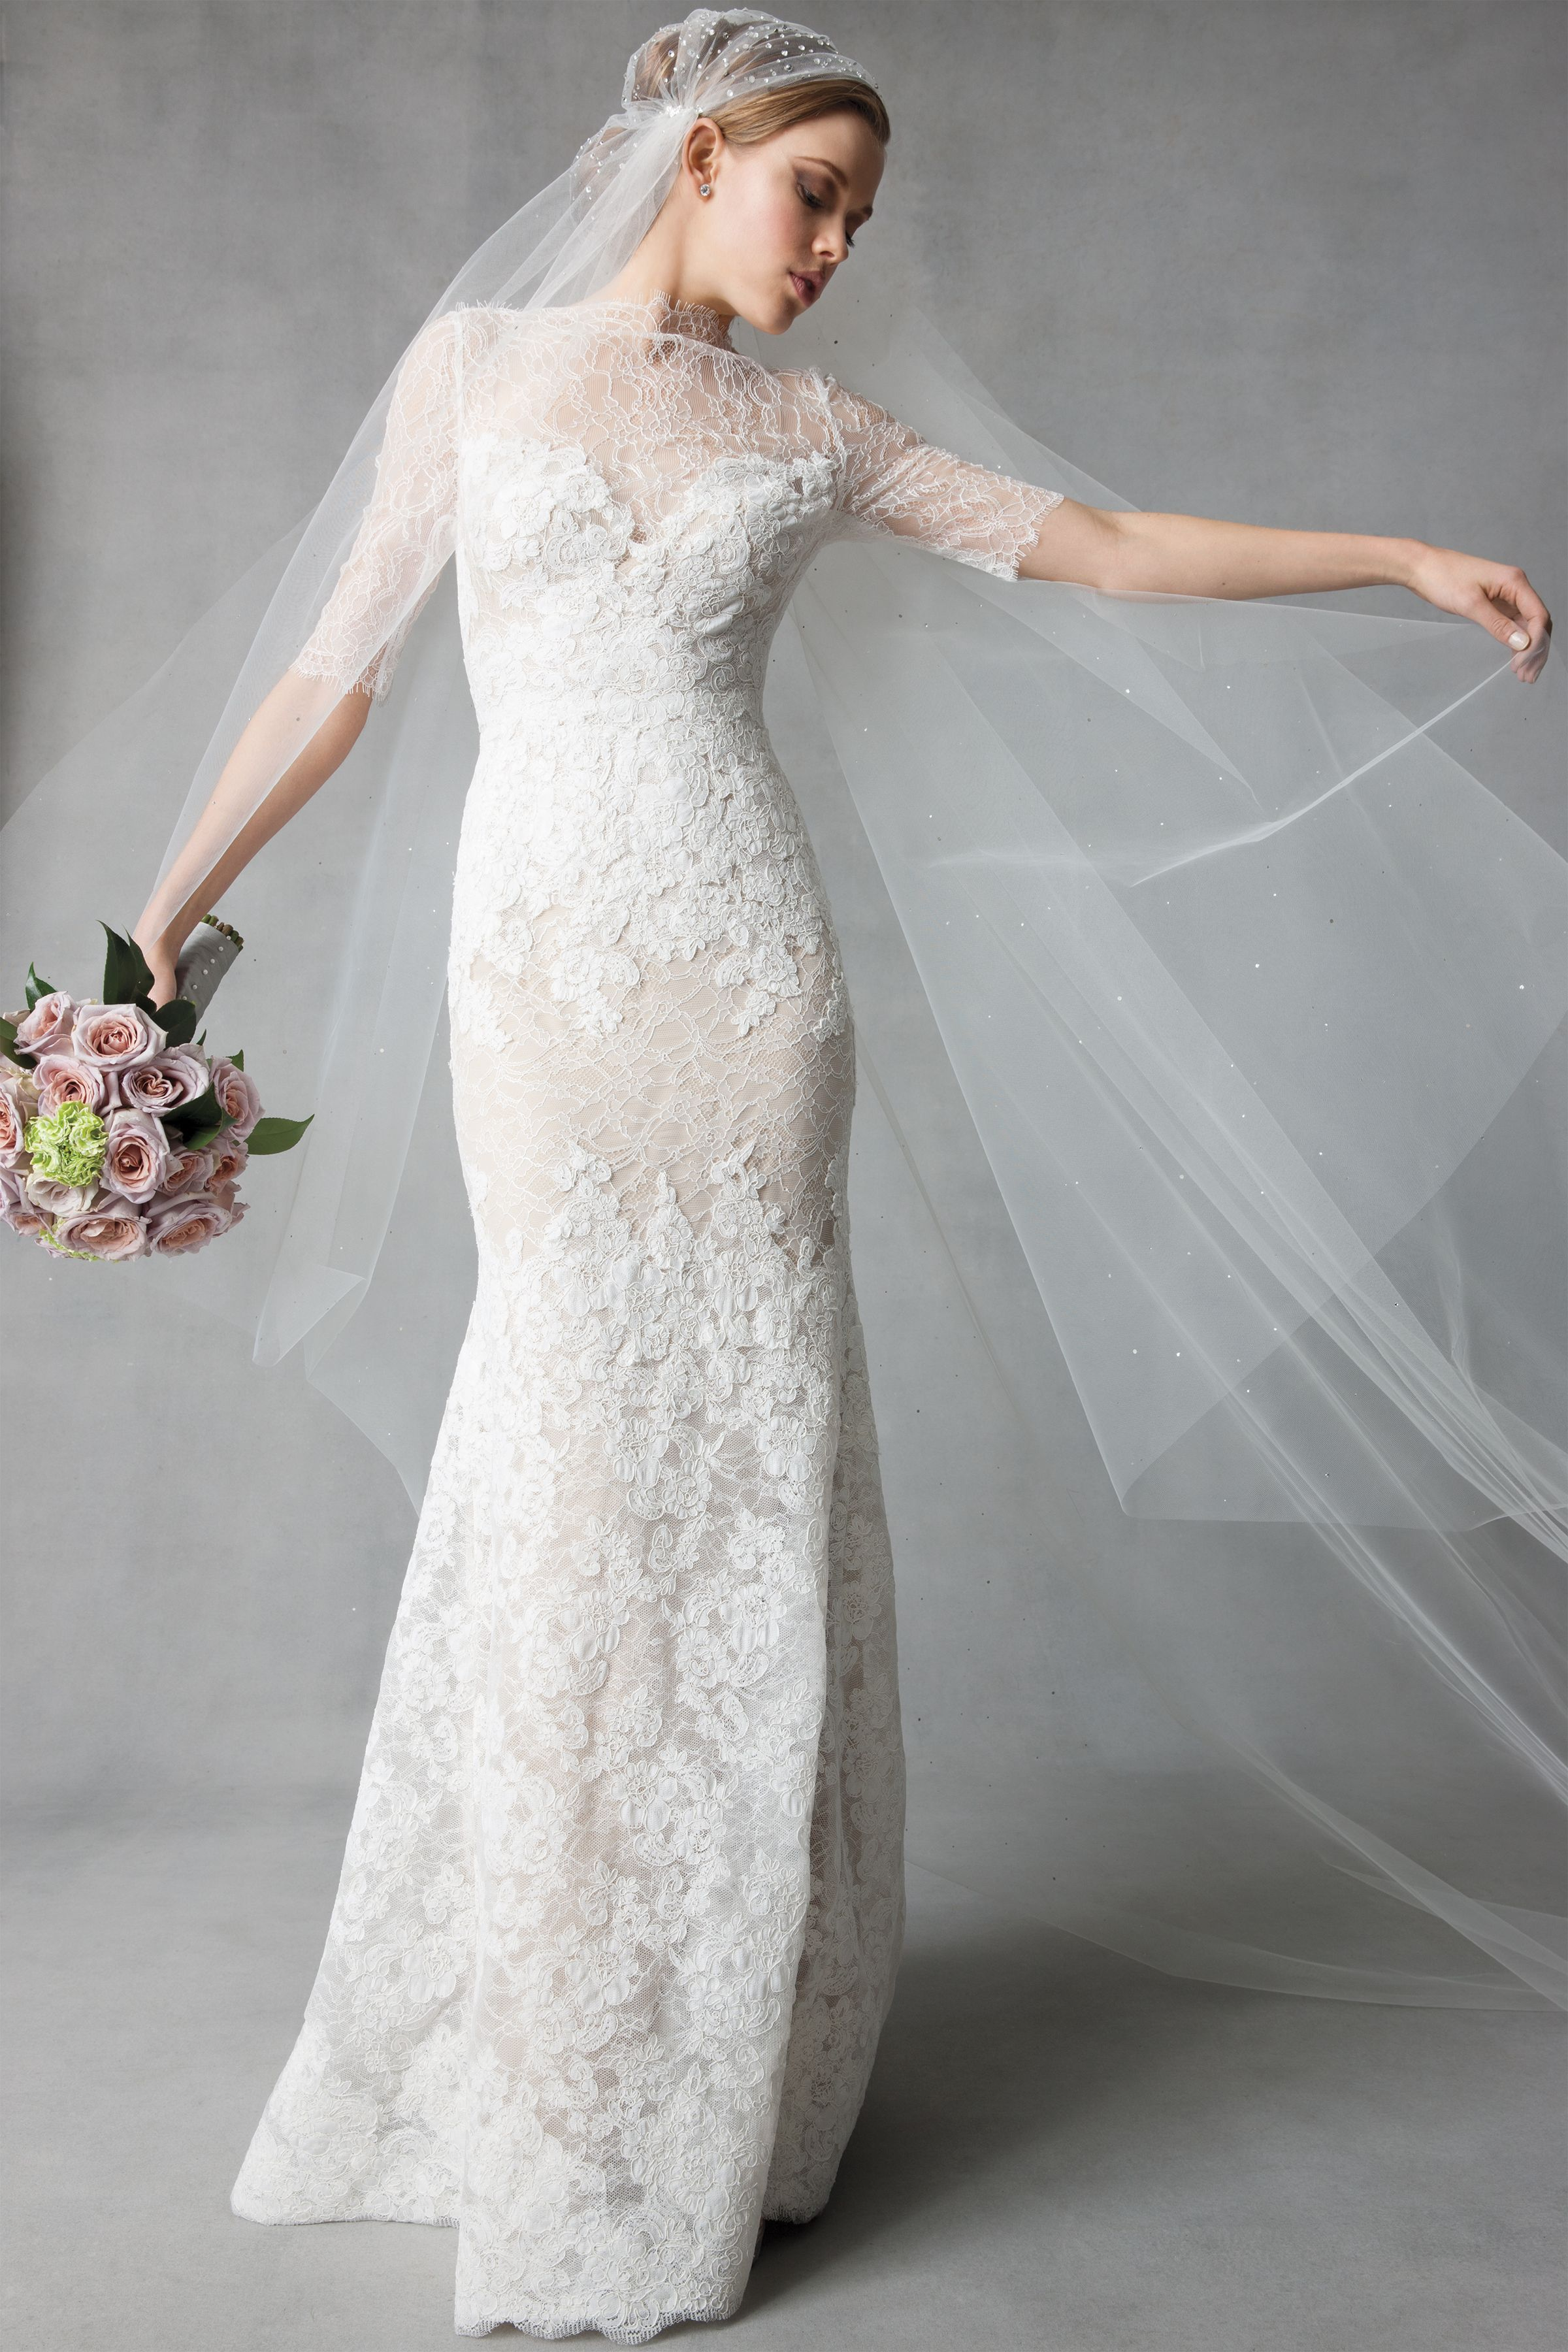 Watters Kerry Wedding Gown | Design | Pinterest | Veil, Gowns and ...